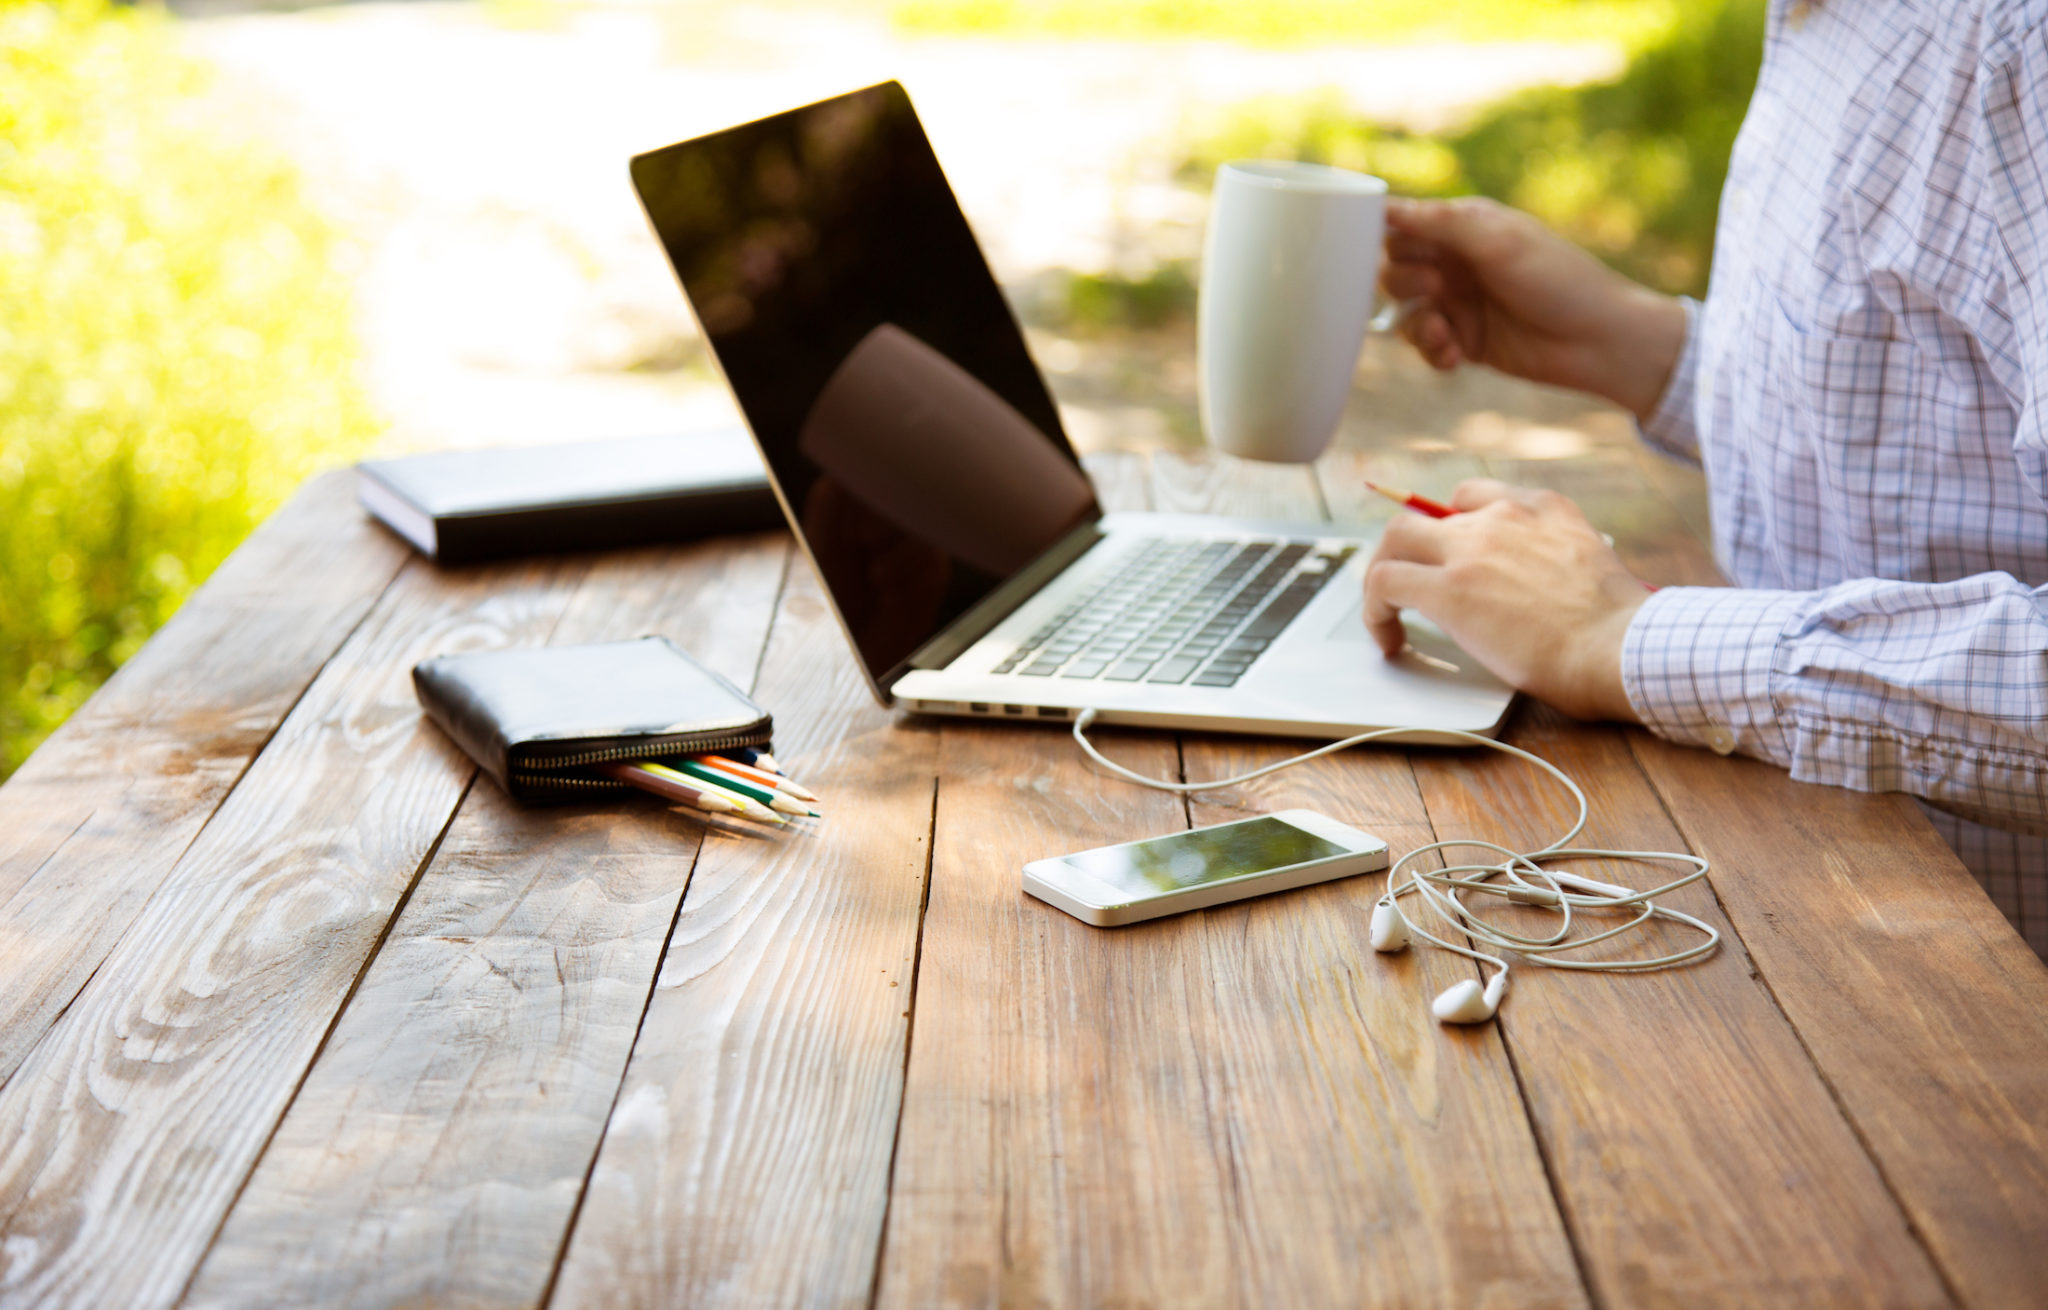 Successful telework requires the right equipment and strategy